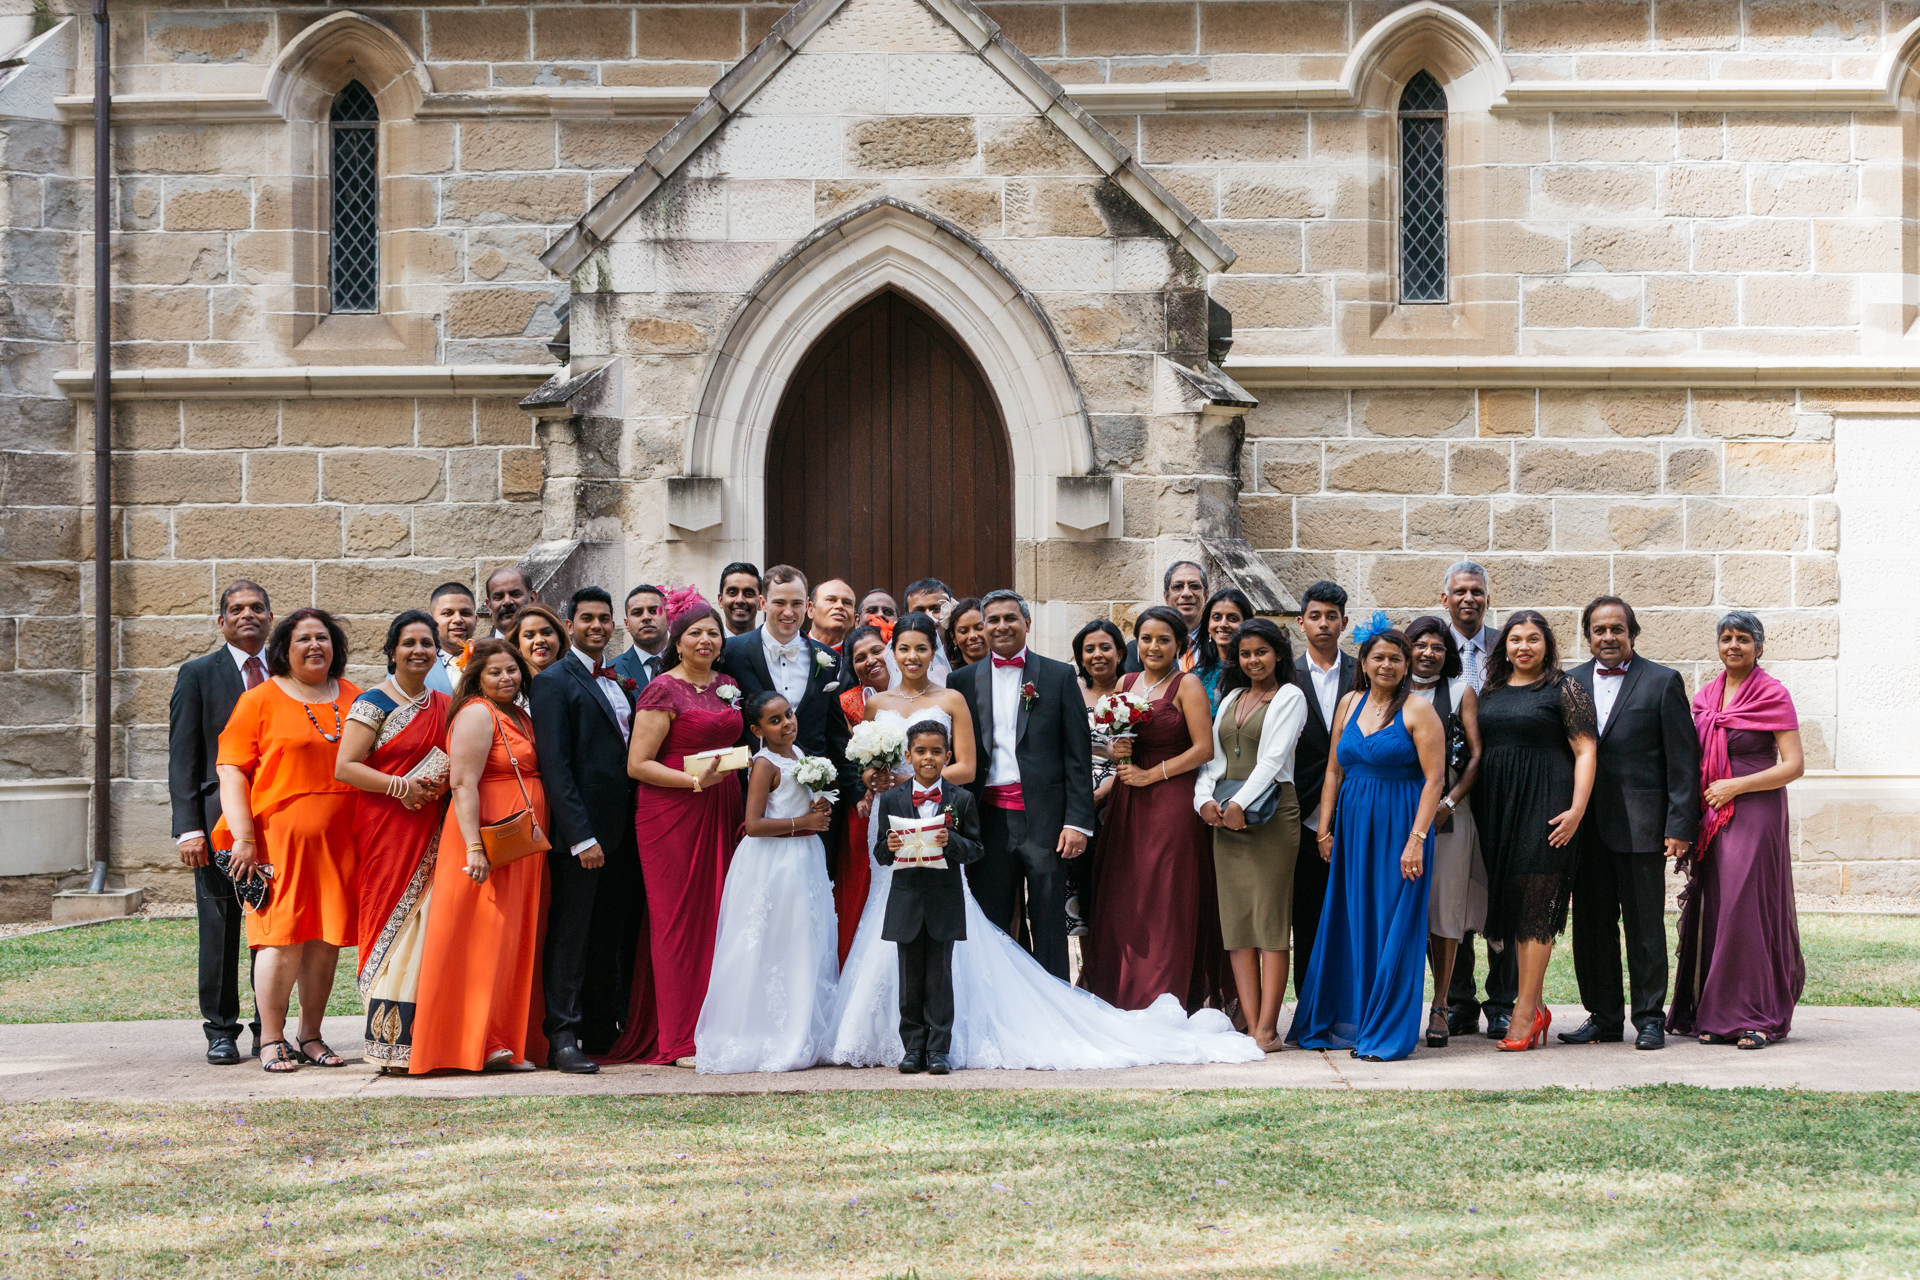 Group Wedding Photo at Cathedral of Saint Stephen